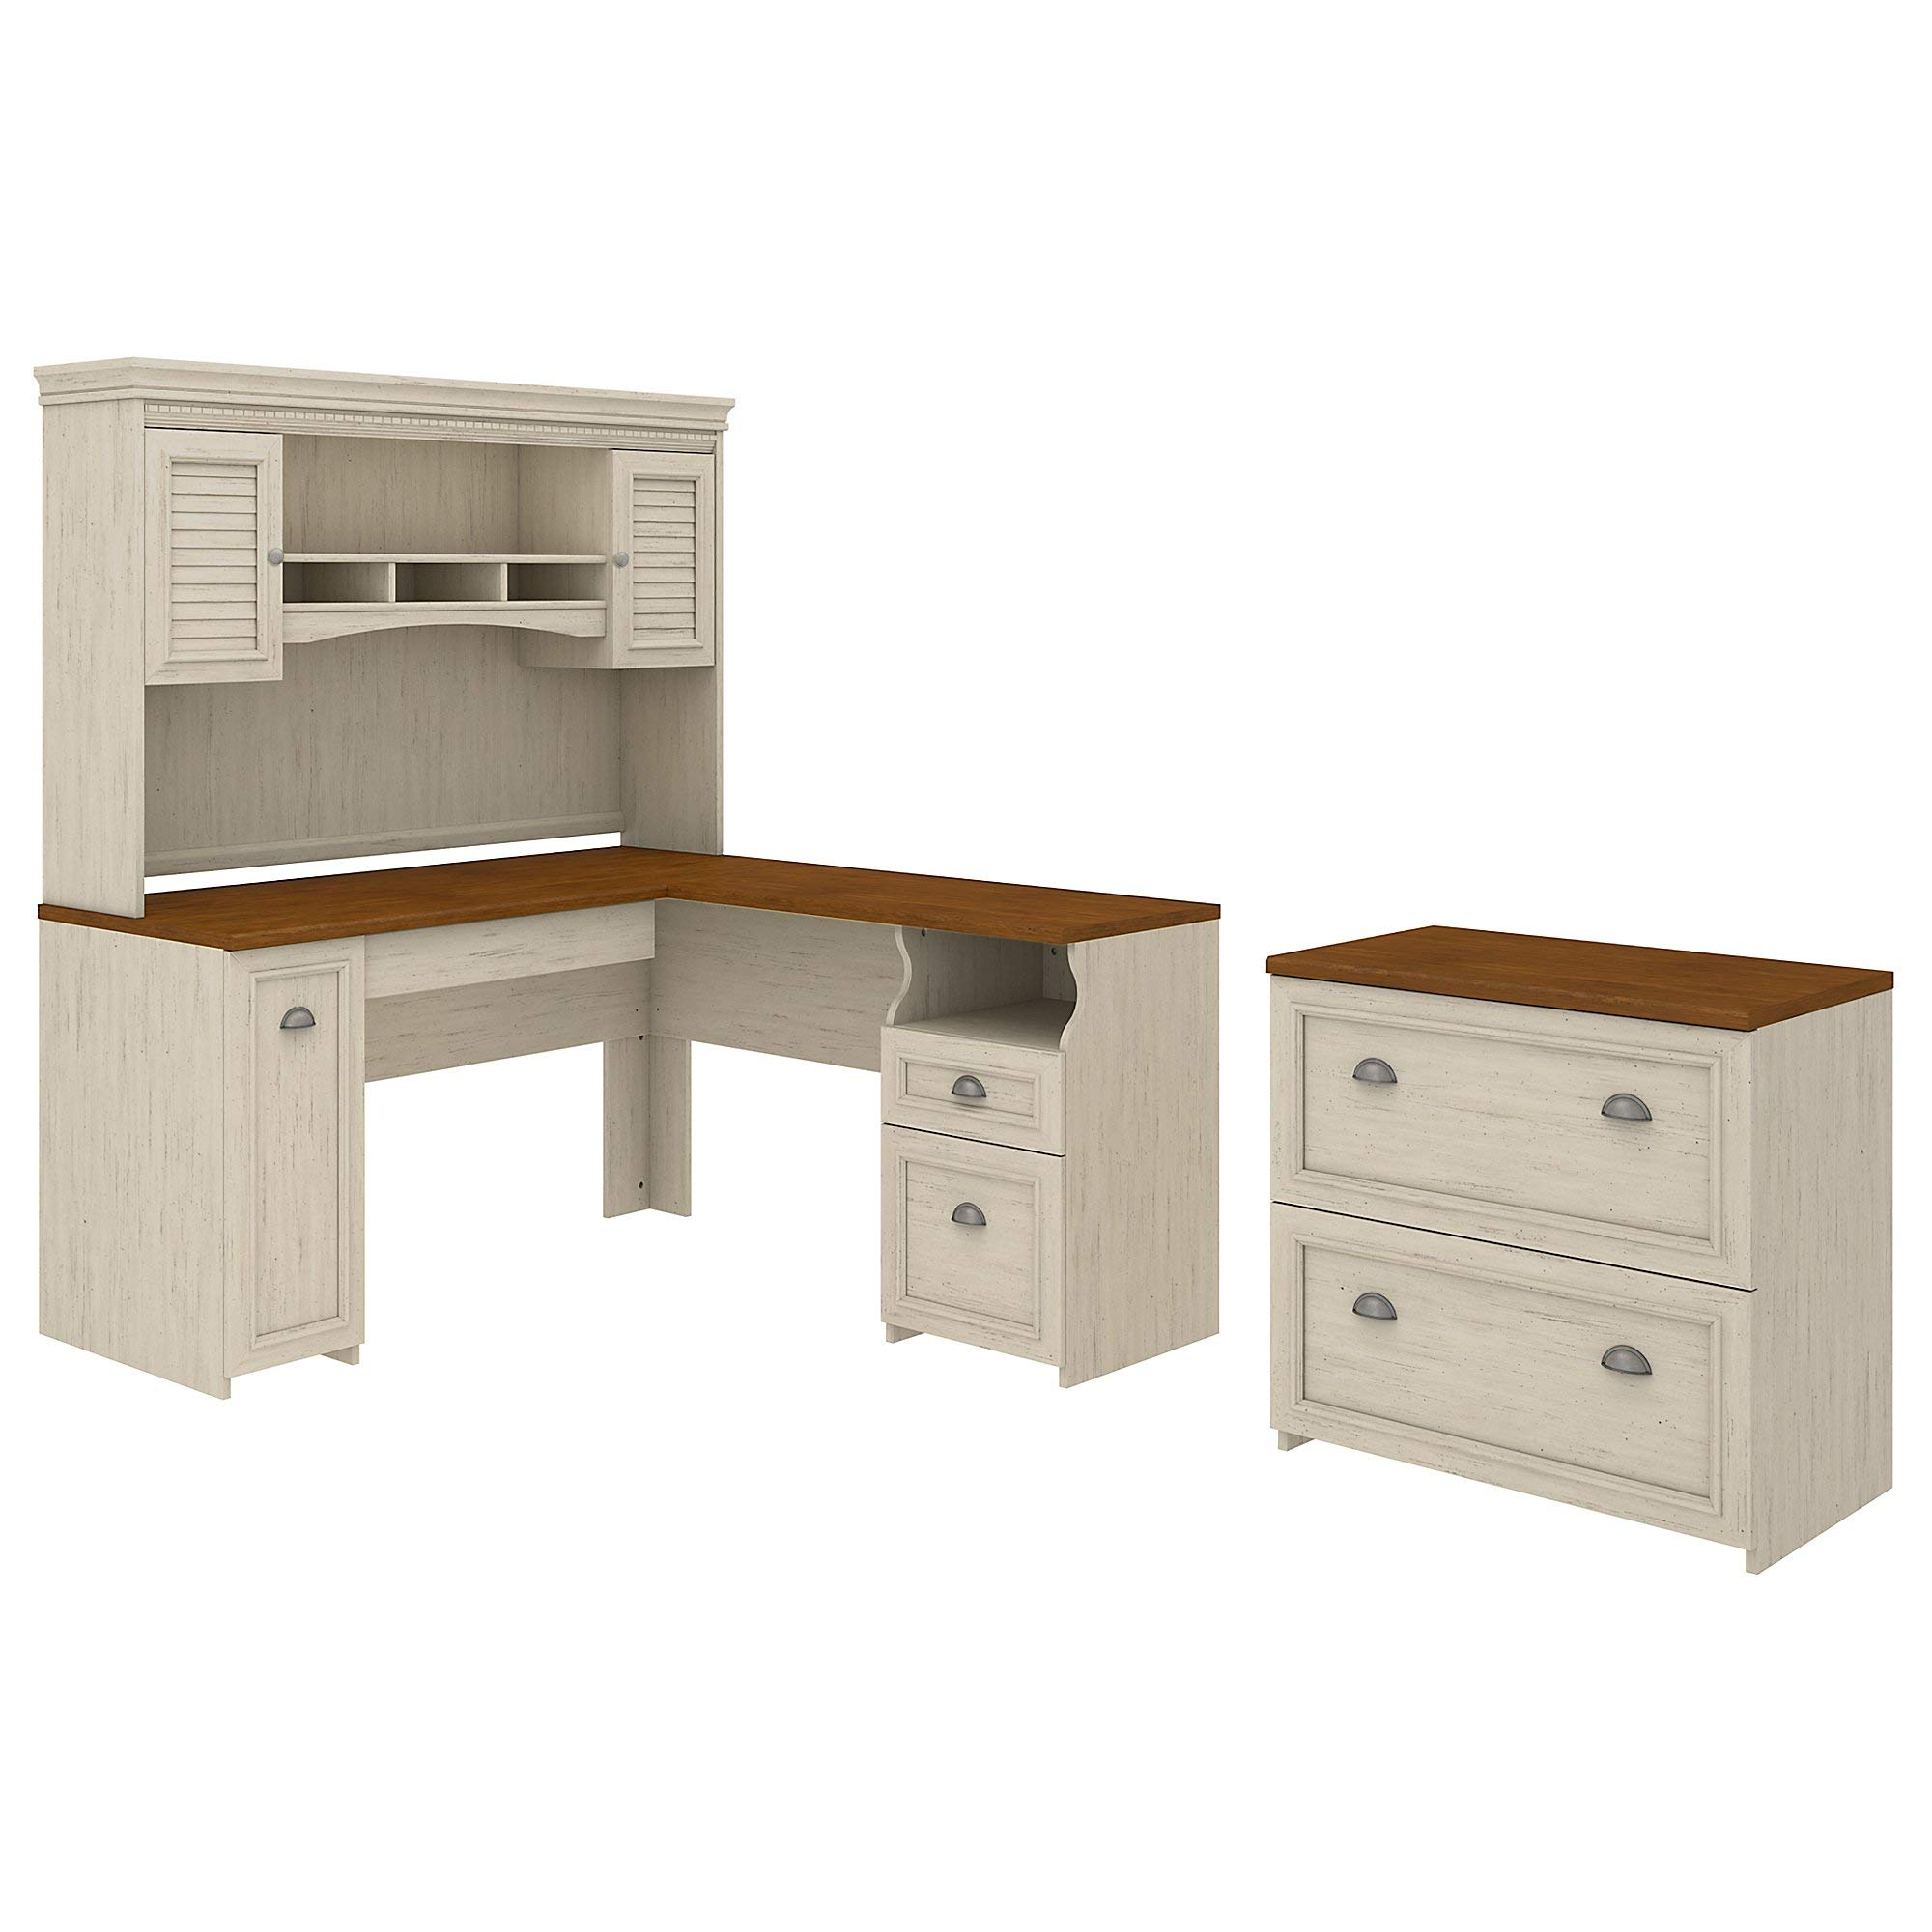 Fairview L Shaped Desk with Hutch and Lateral File Cabinet by Bush Furniture